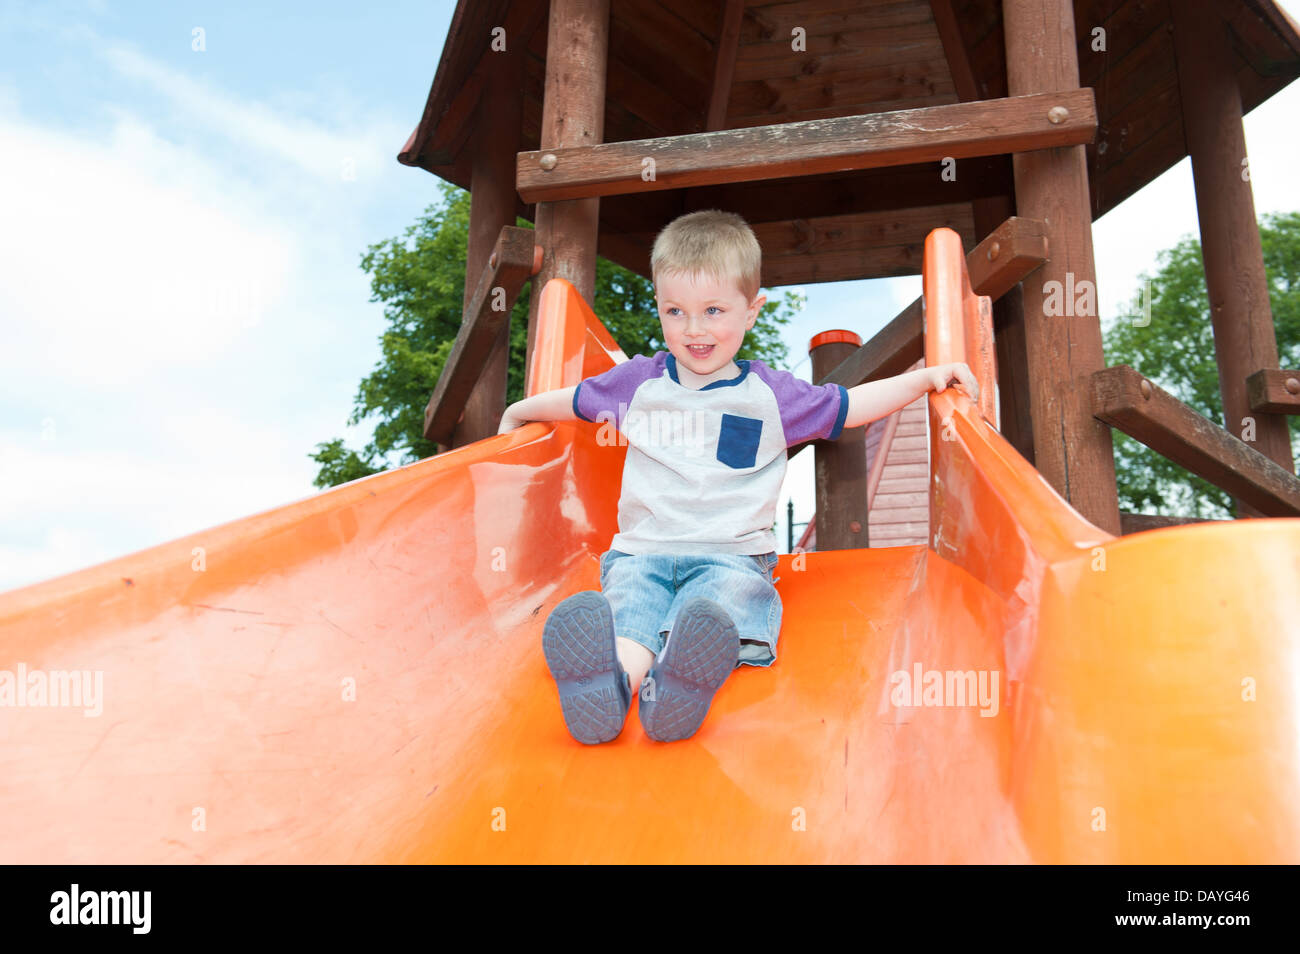 A cute smiling young child aged three sliding down an orange slide at a playground - Stock Image